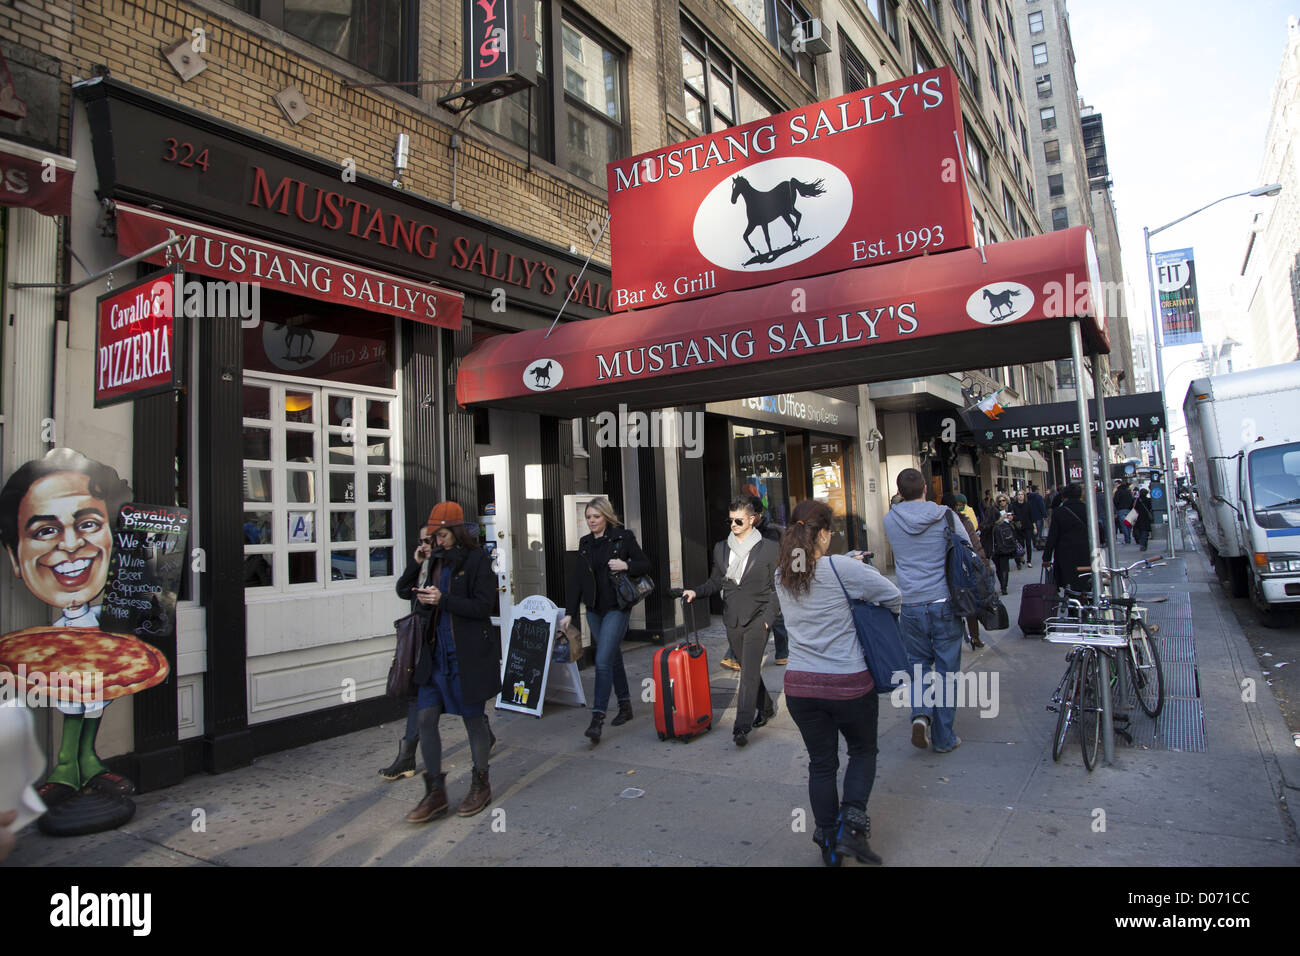 Restaurant Sidewalk Restaurants Manhattan Stock Photos Restaurant Sidewalk Restaurants